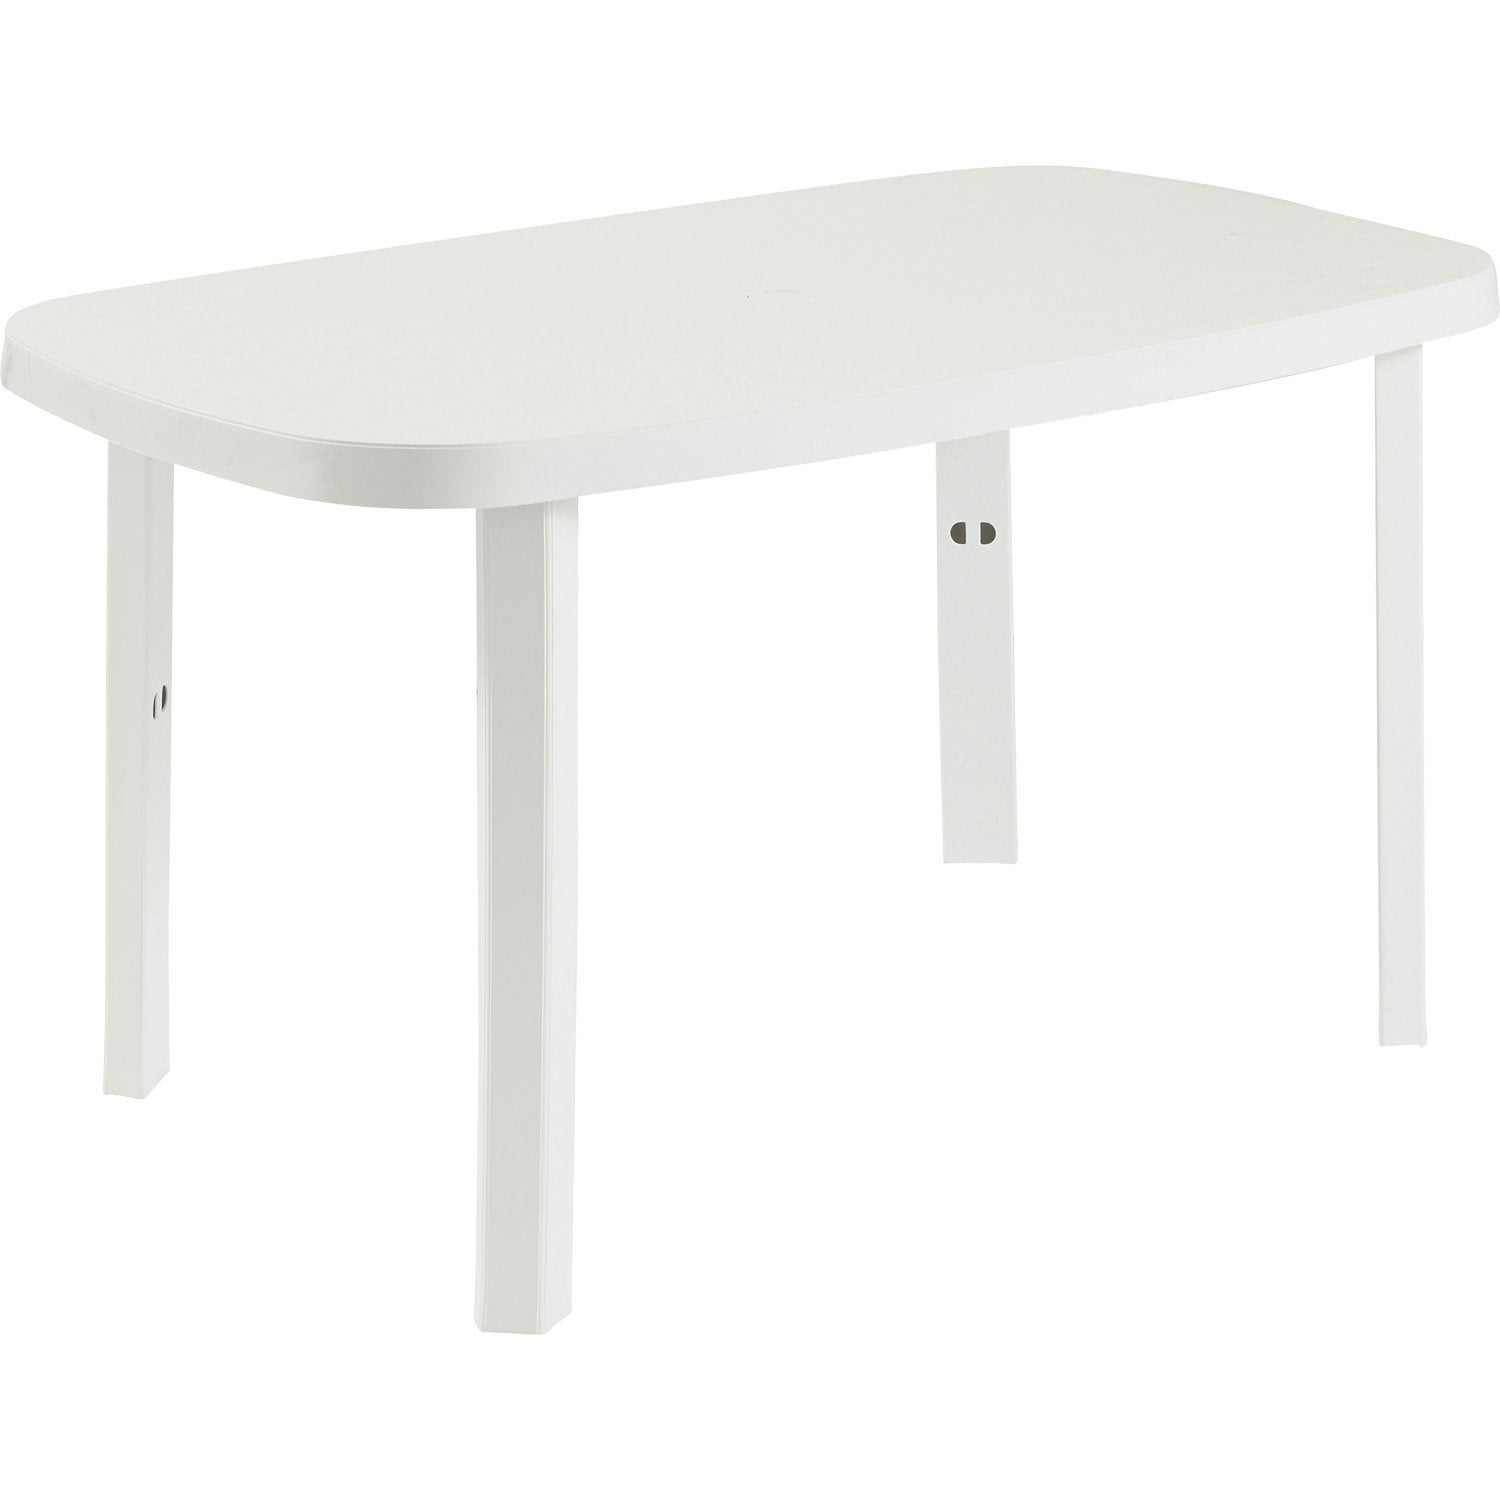 Table de jardin otello ovale blanc 2 personnes leroy merlin for Table de jardin plastique